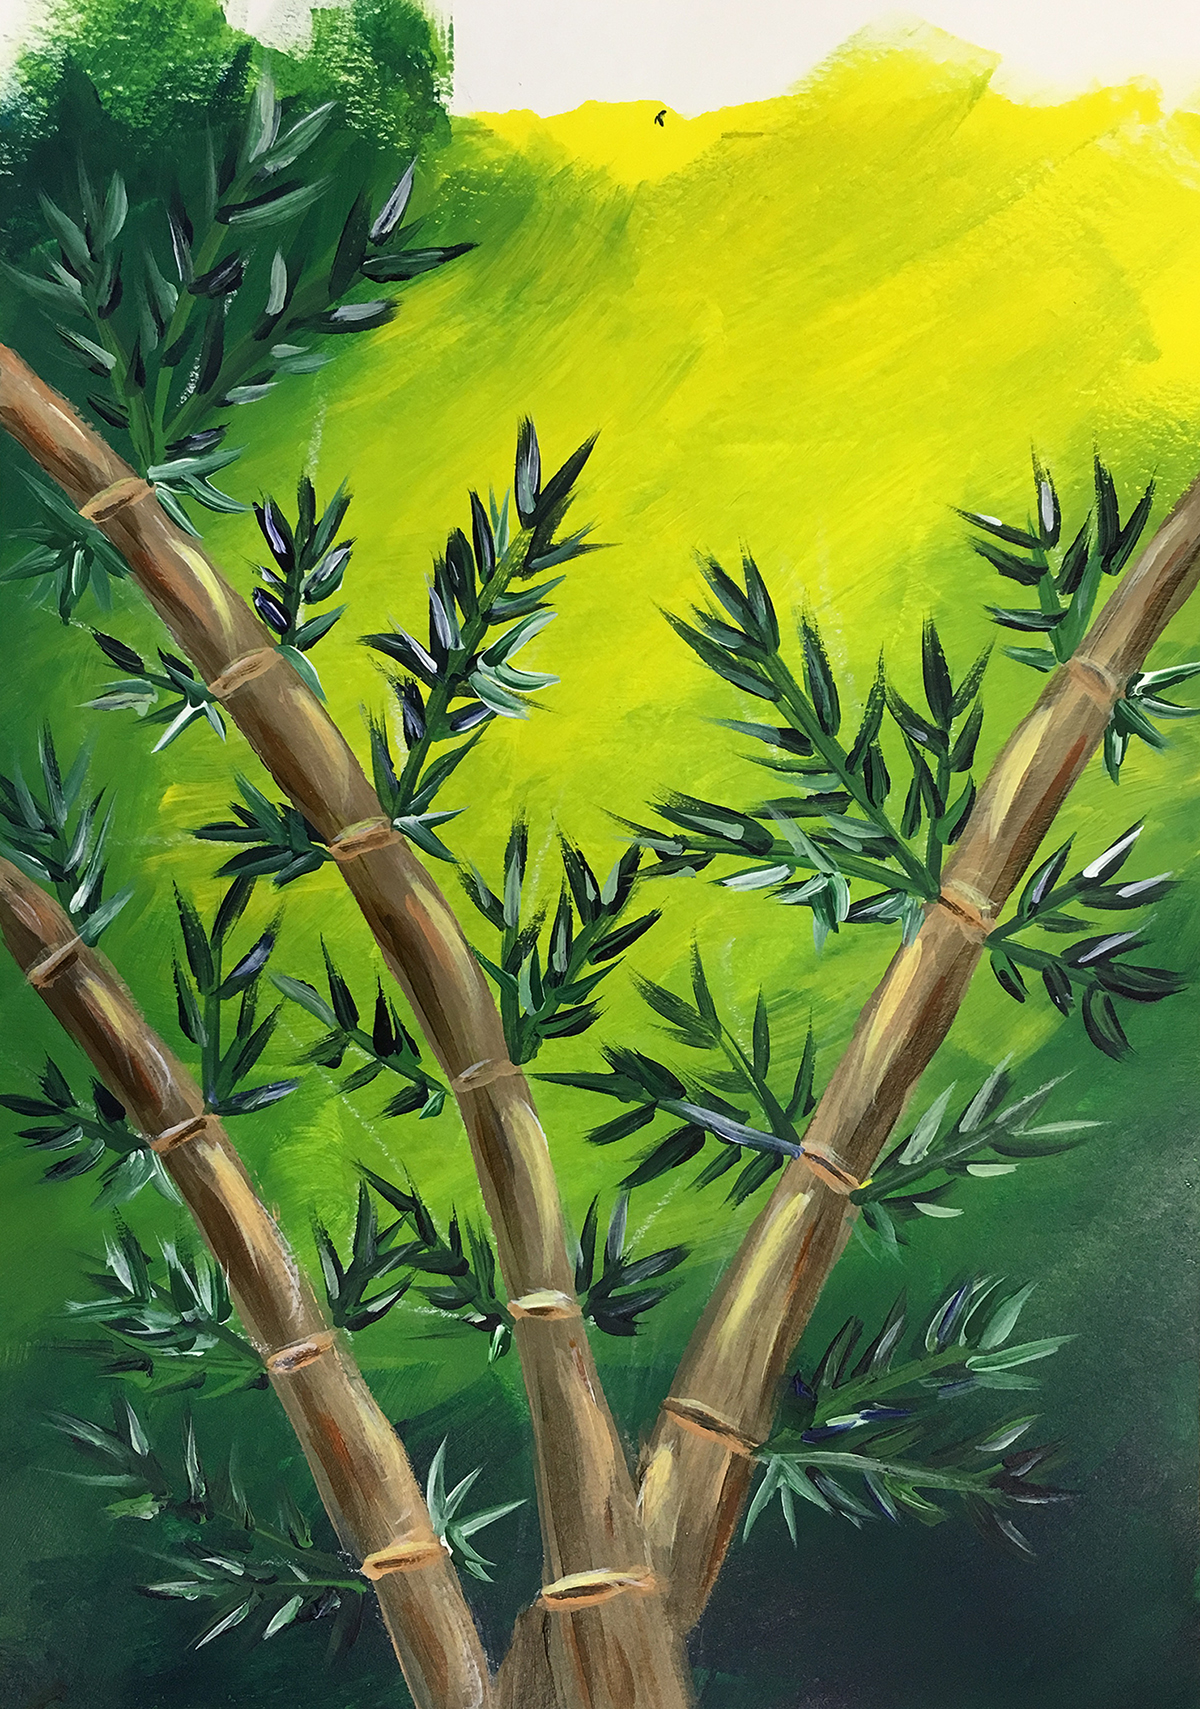 painting bamboo